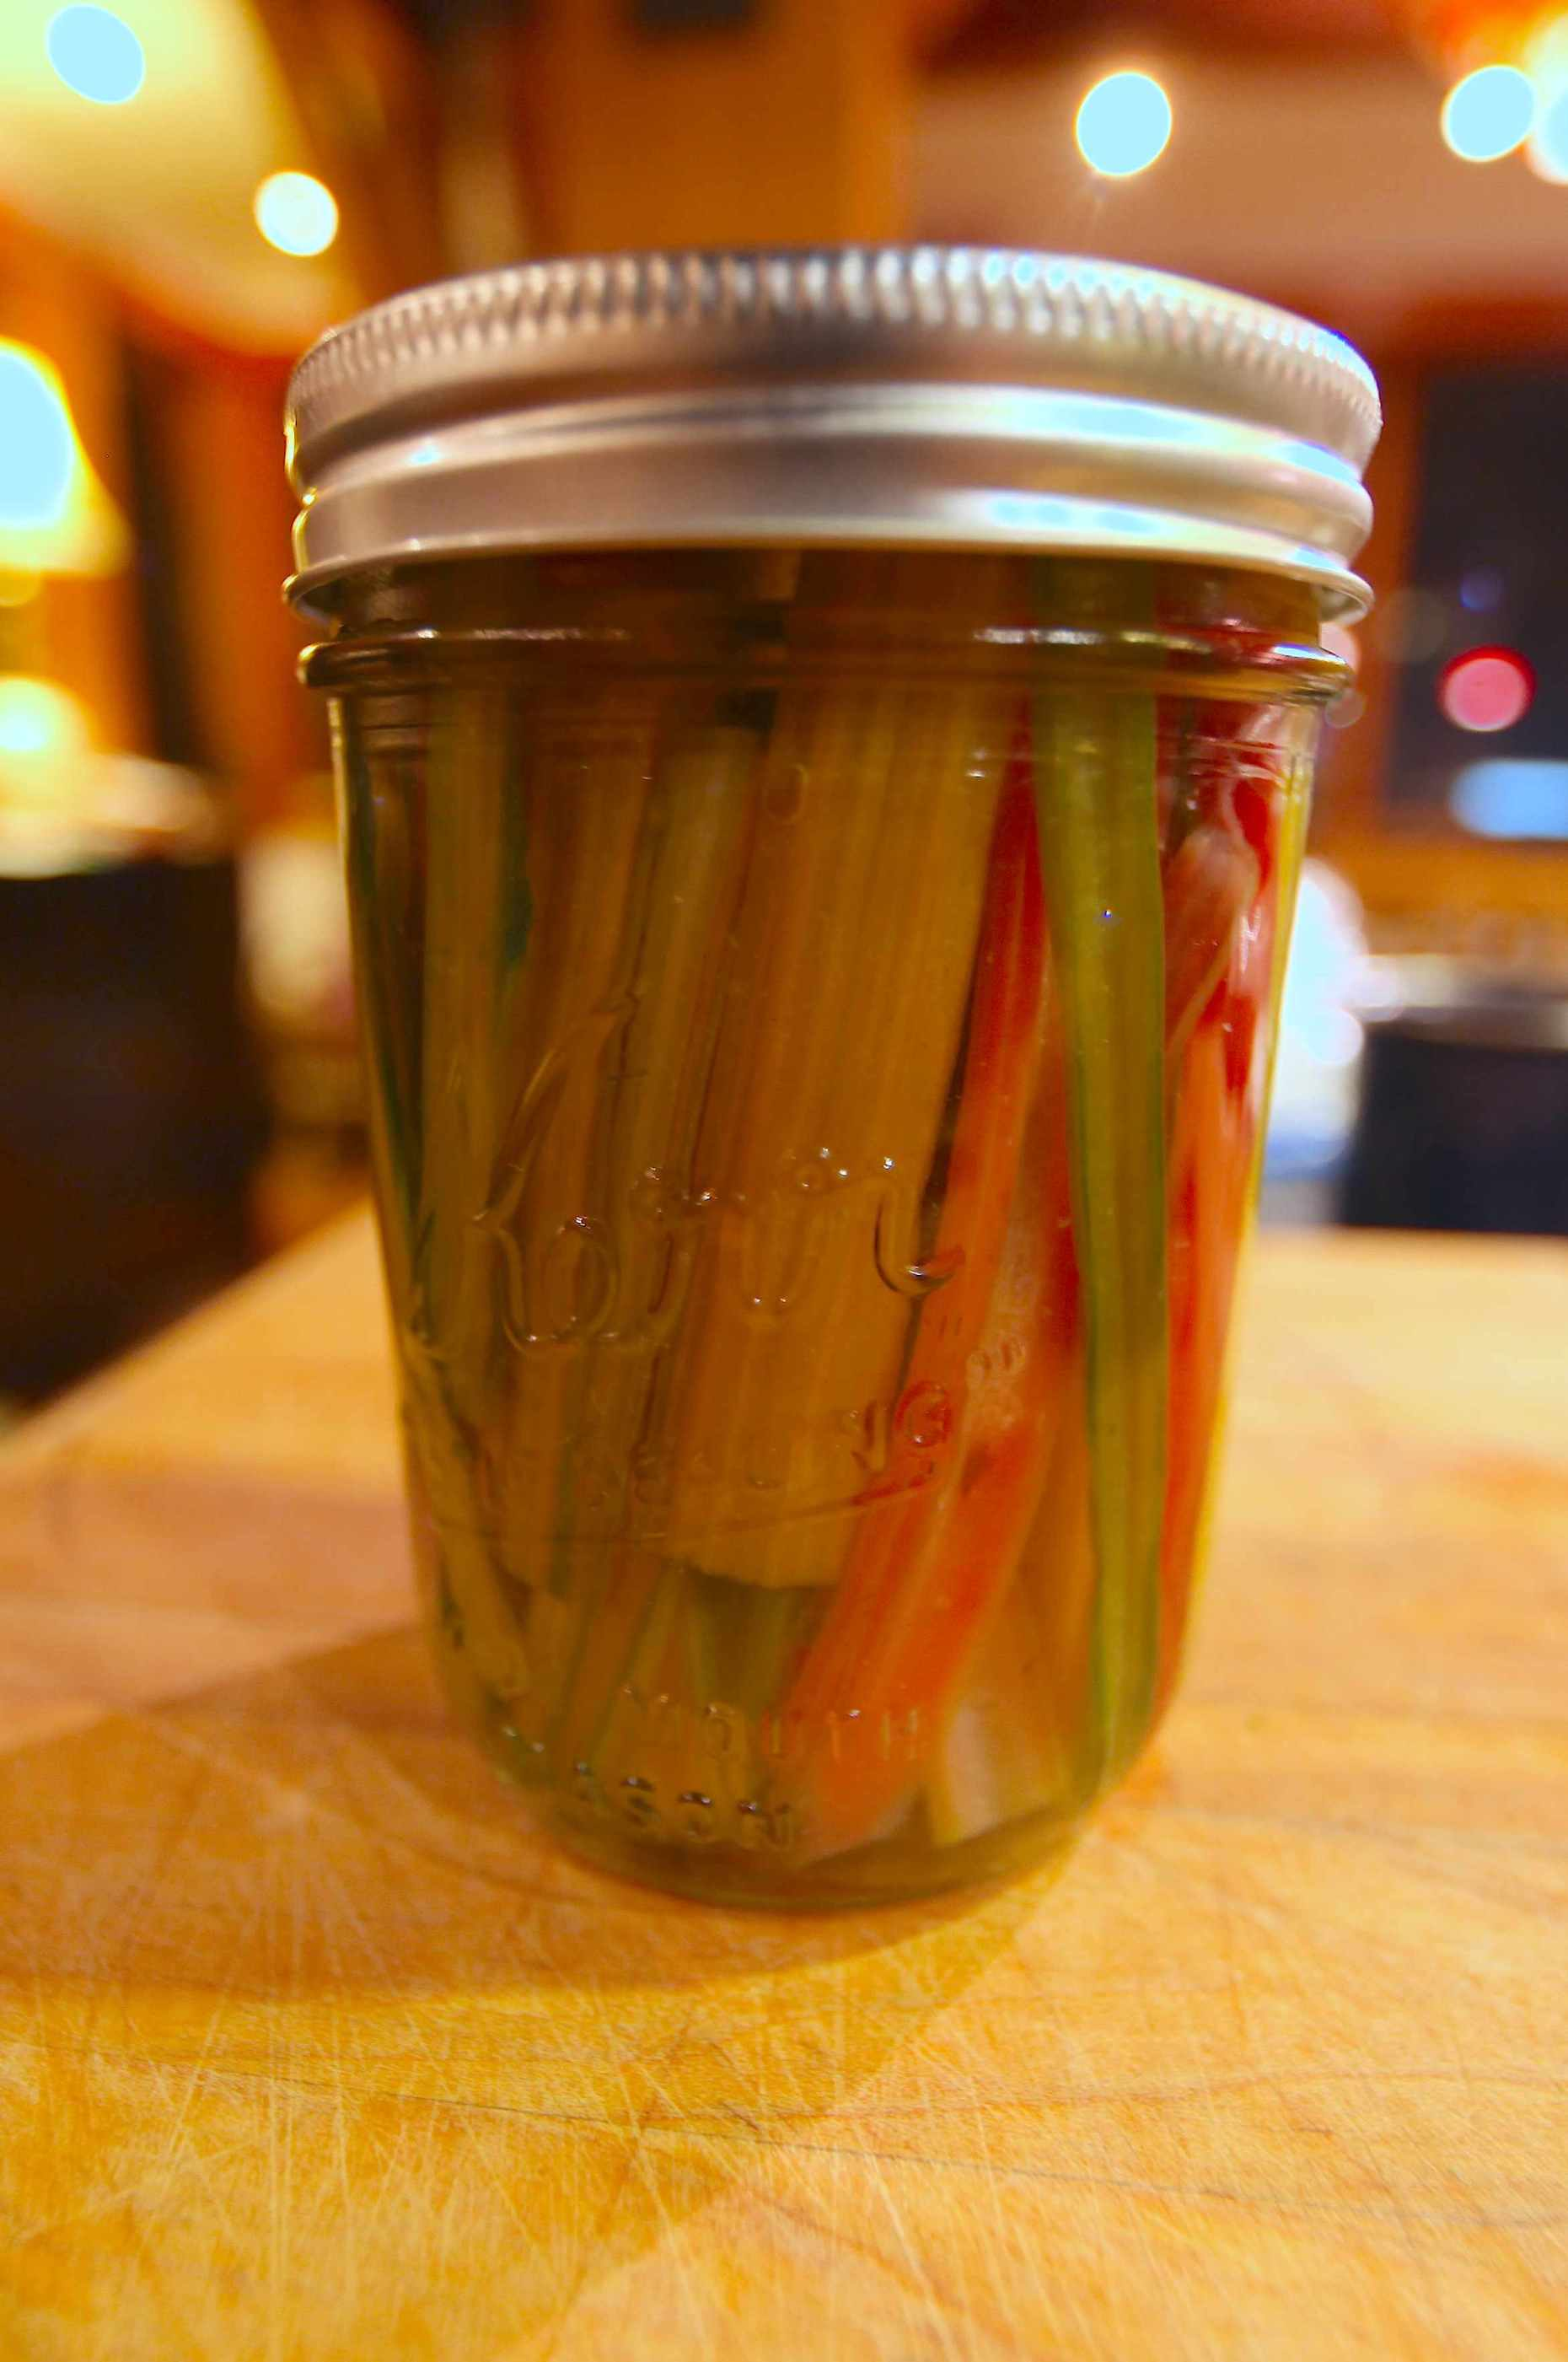 Pickled Chard Stalks. Photo © Liesl Clark